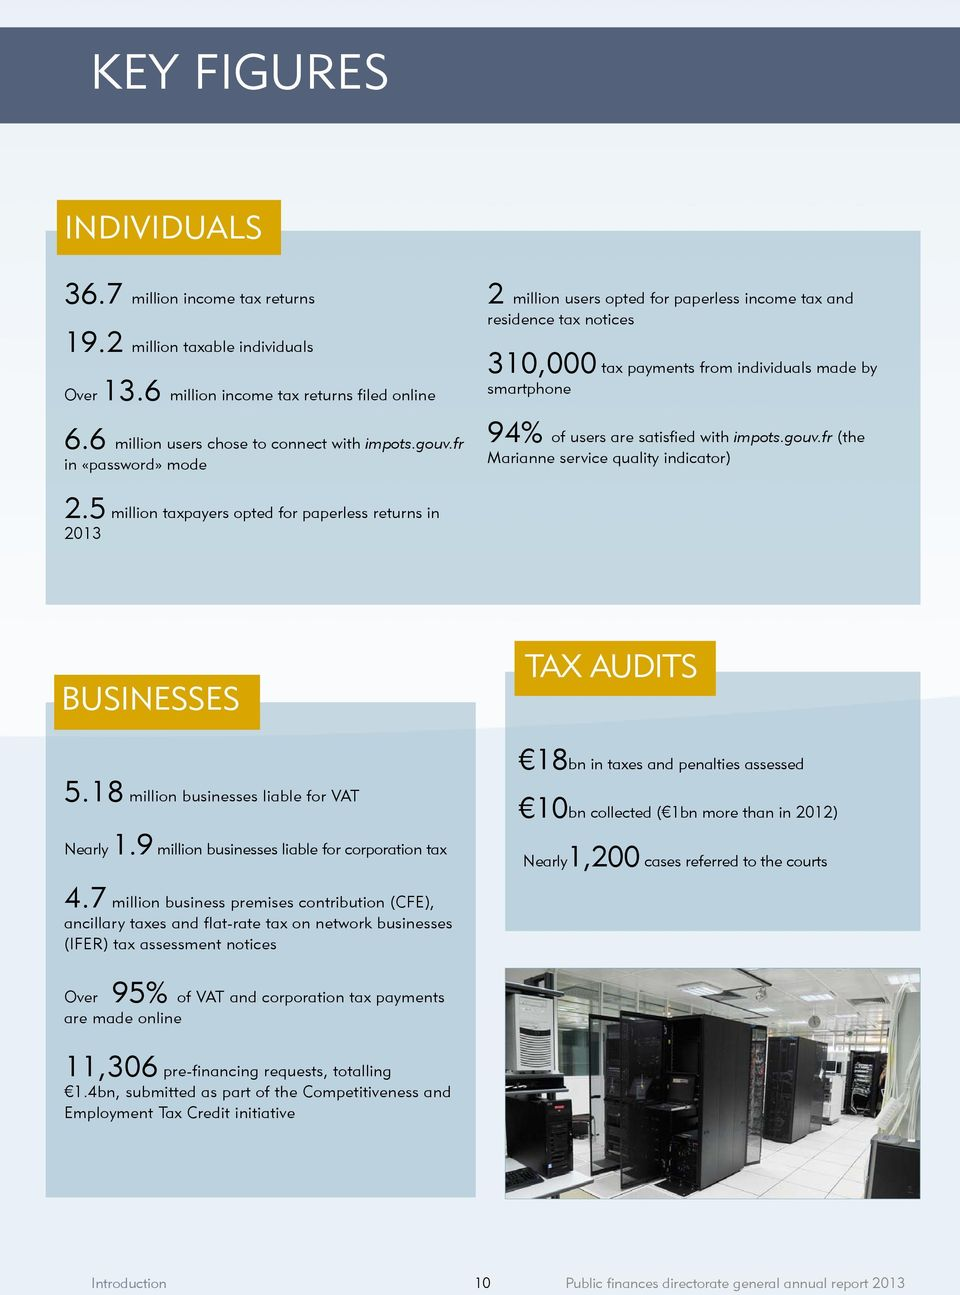 fr (the Marianne service quality indicator) 2.5 million taxpayers opted for paperless returns in 2013 BUSINESSES TAX AUDITS 5.18 million businesses liable for VAT Nearly 1.